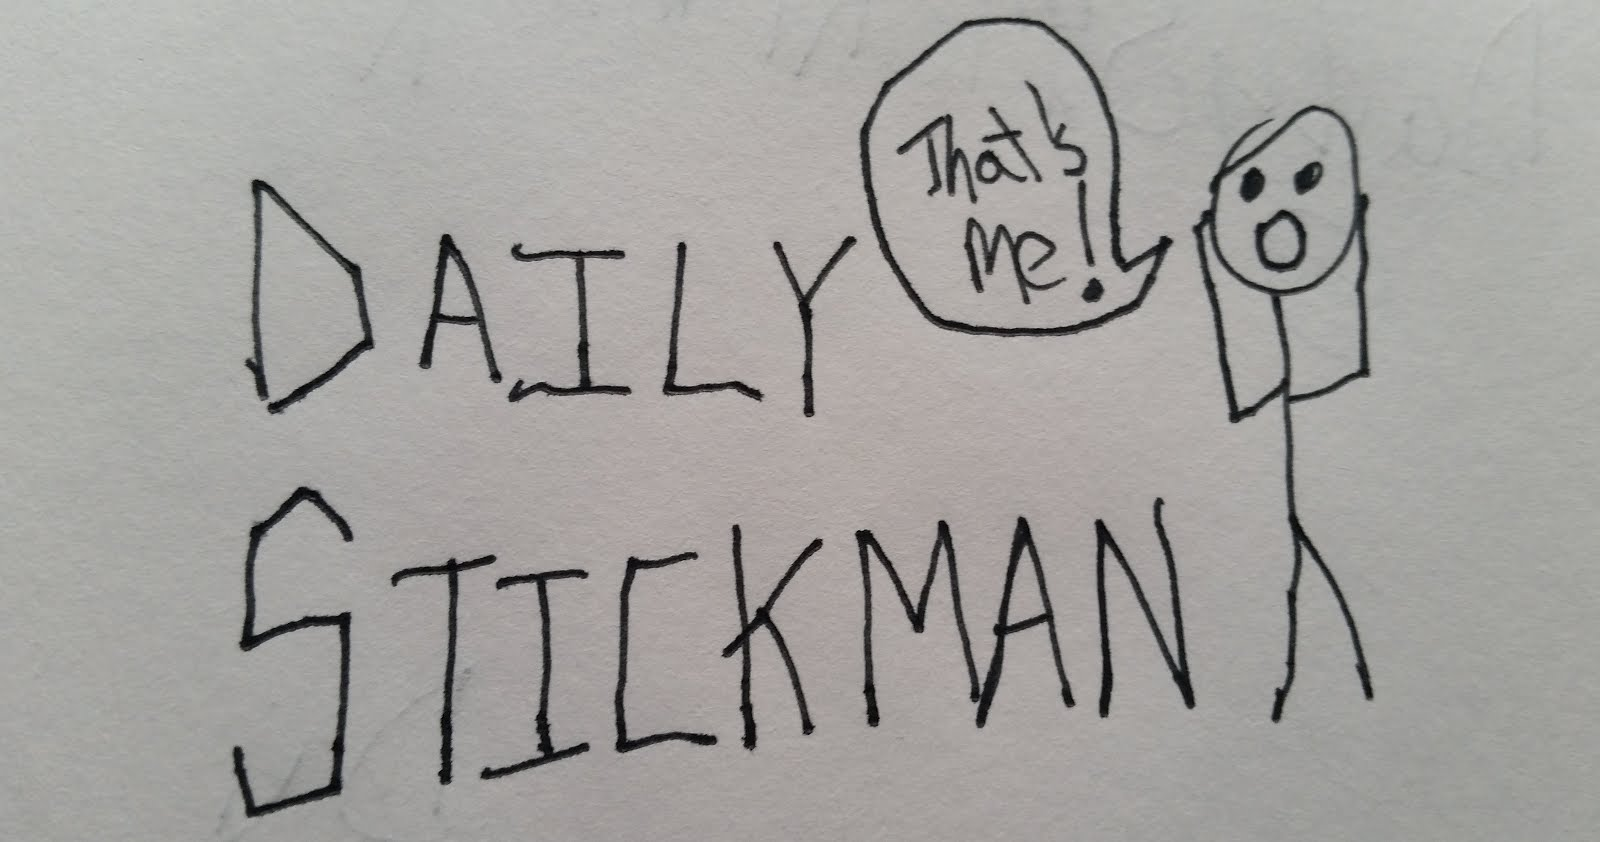 The Daily StickMan